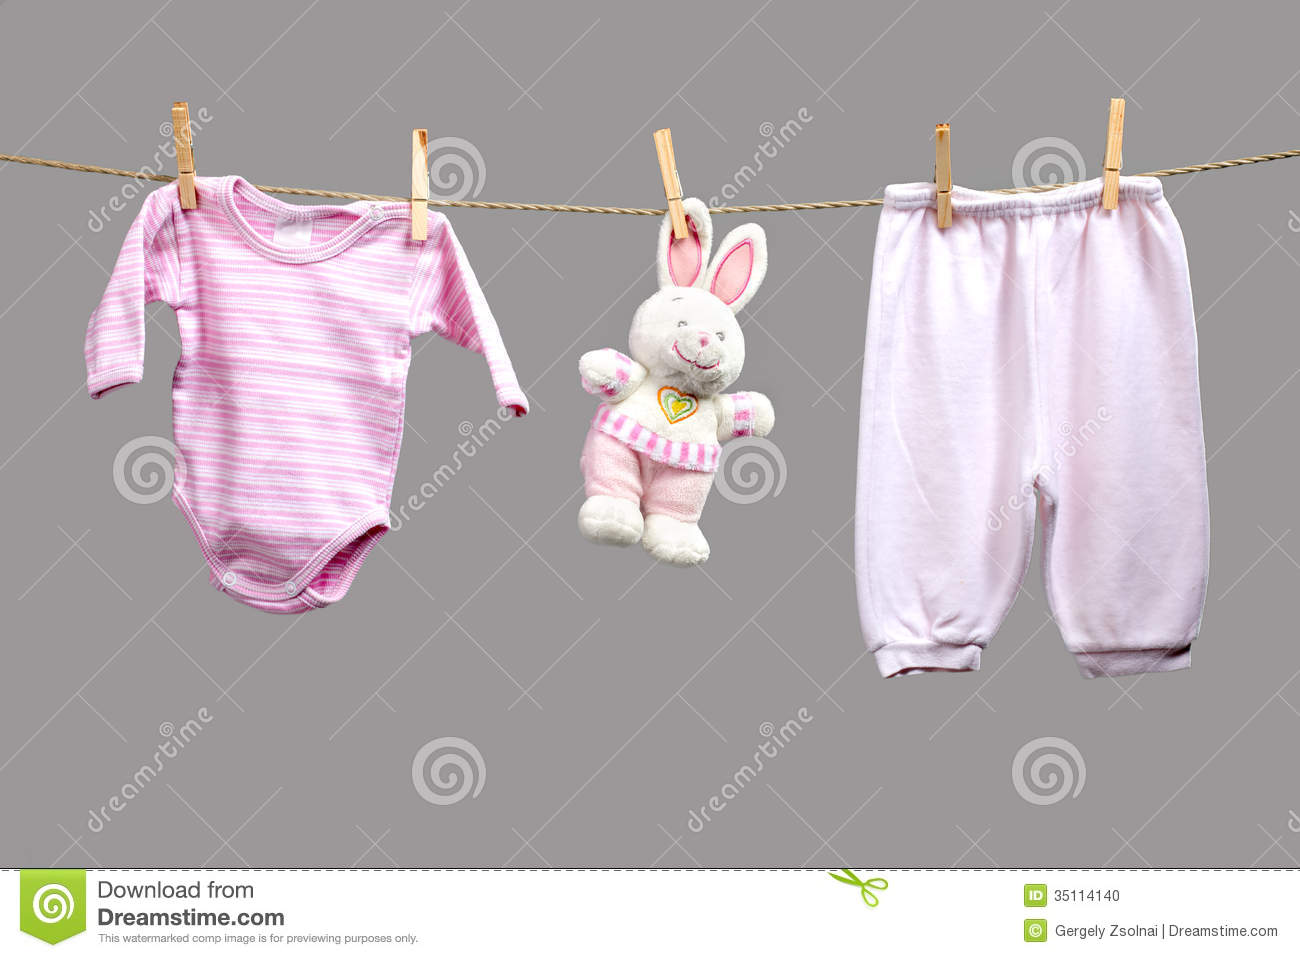 Baby Girl Y Clothes The Clothesline Stock Image